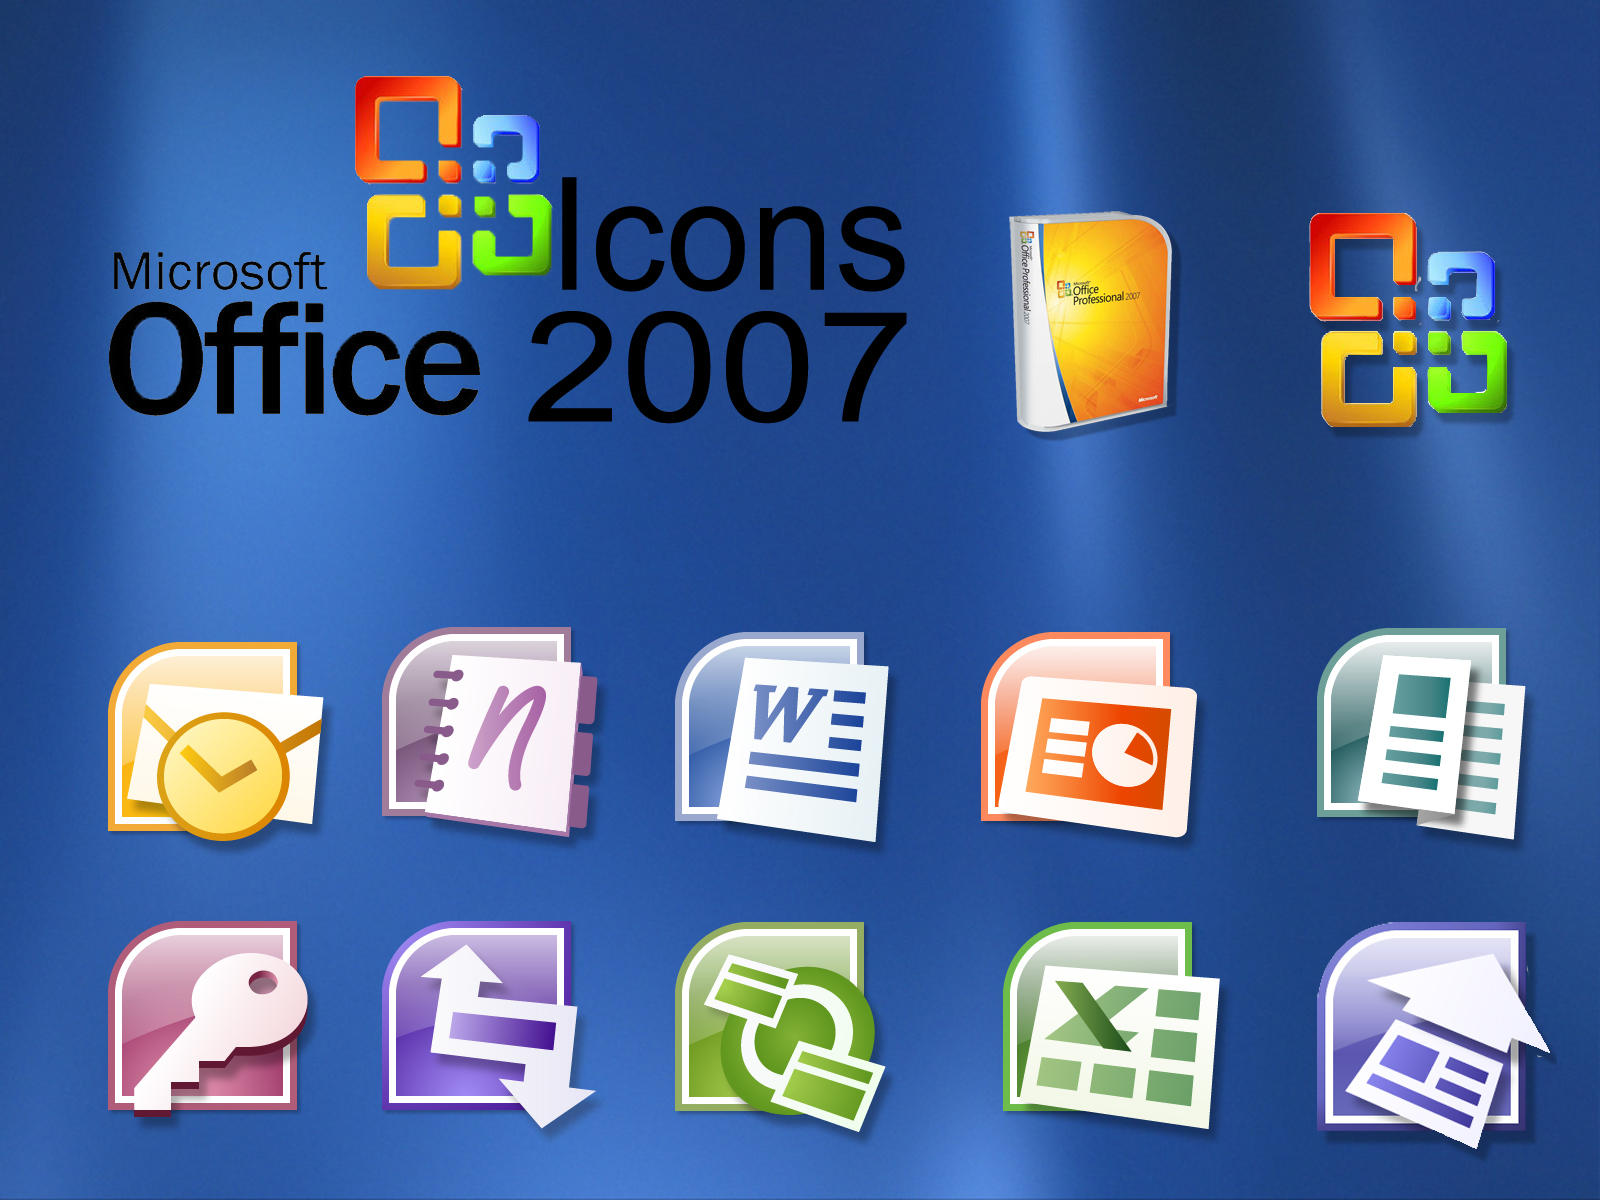 Office 2007 Icons by kokej69